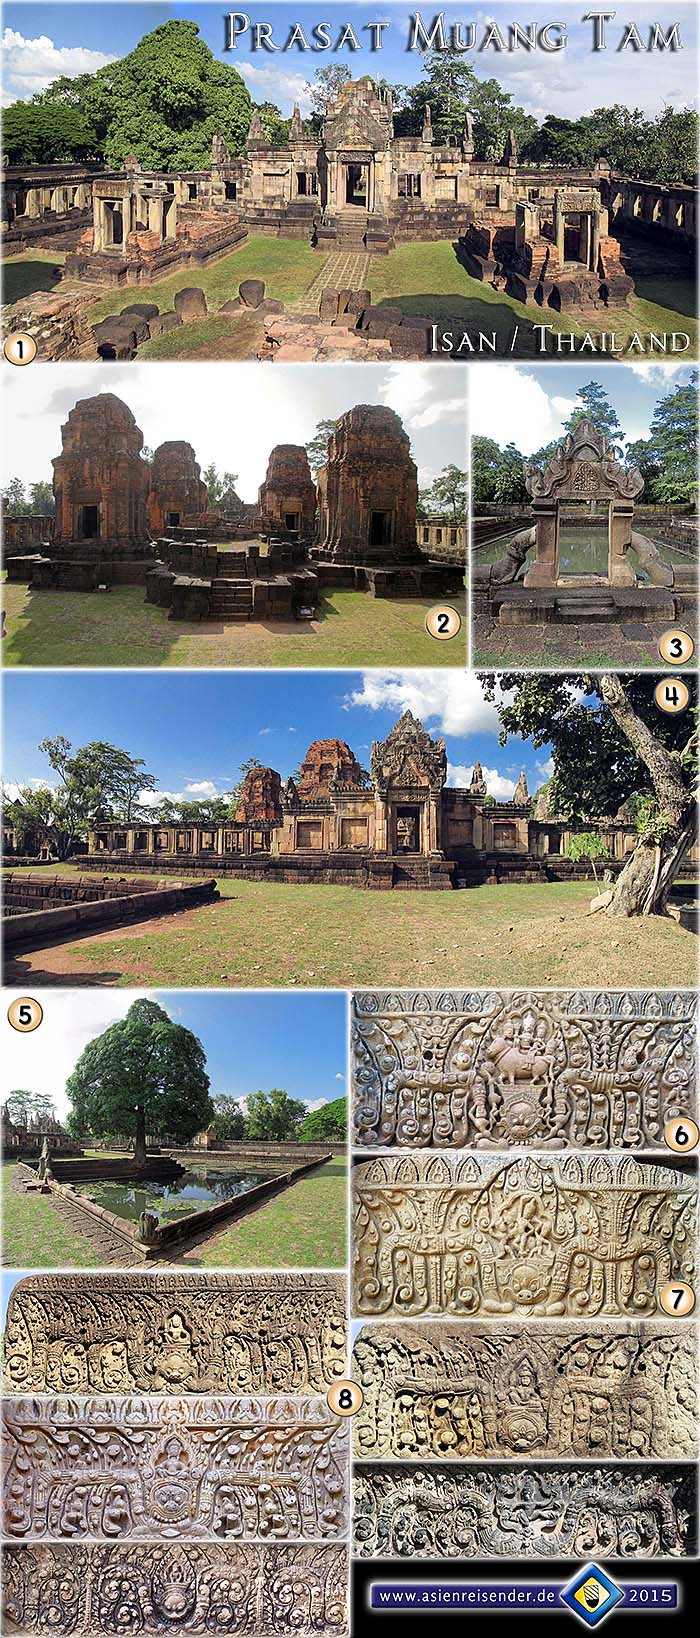 Photocomposition 'Prasat Muang Tam' by Asienreisender